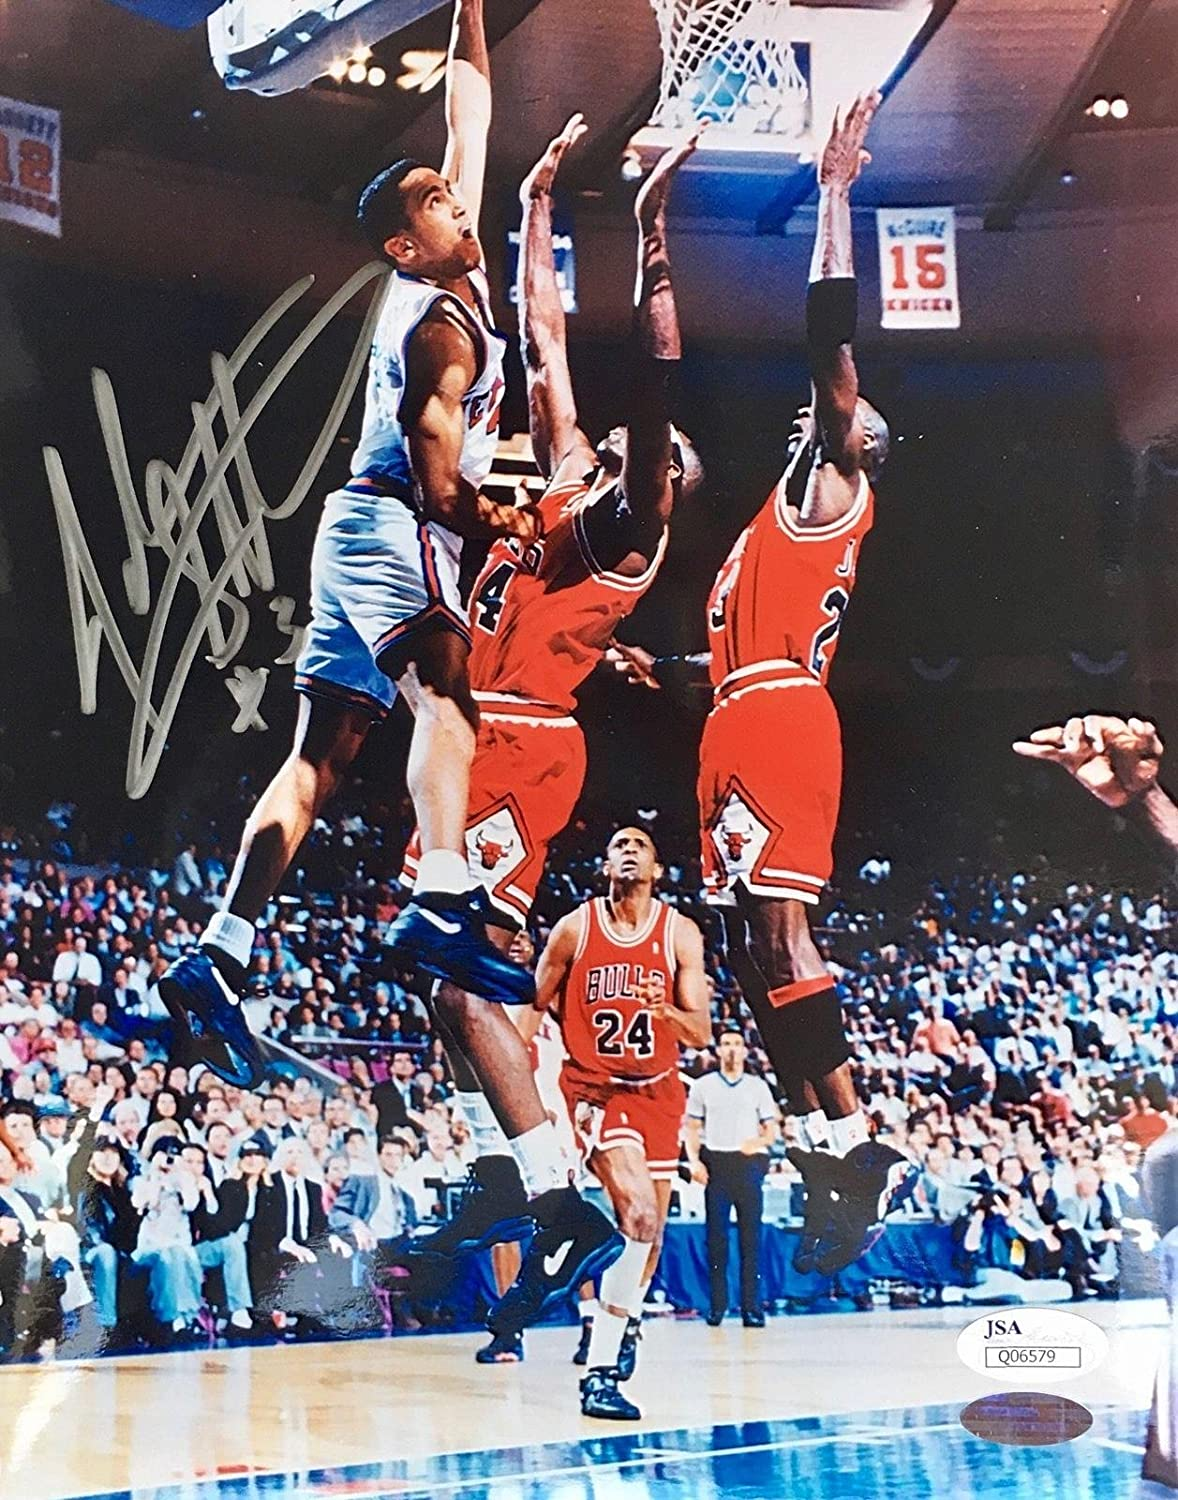 7cde445b Autographed John Starks Photo - The Dunk 8x10 - JSA Certified - Autographed  NBA Photos at Amazon's Sports Collectibles Store